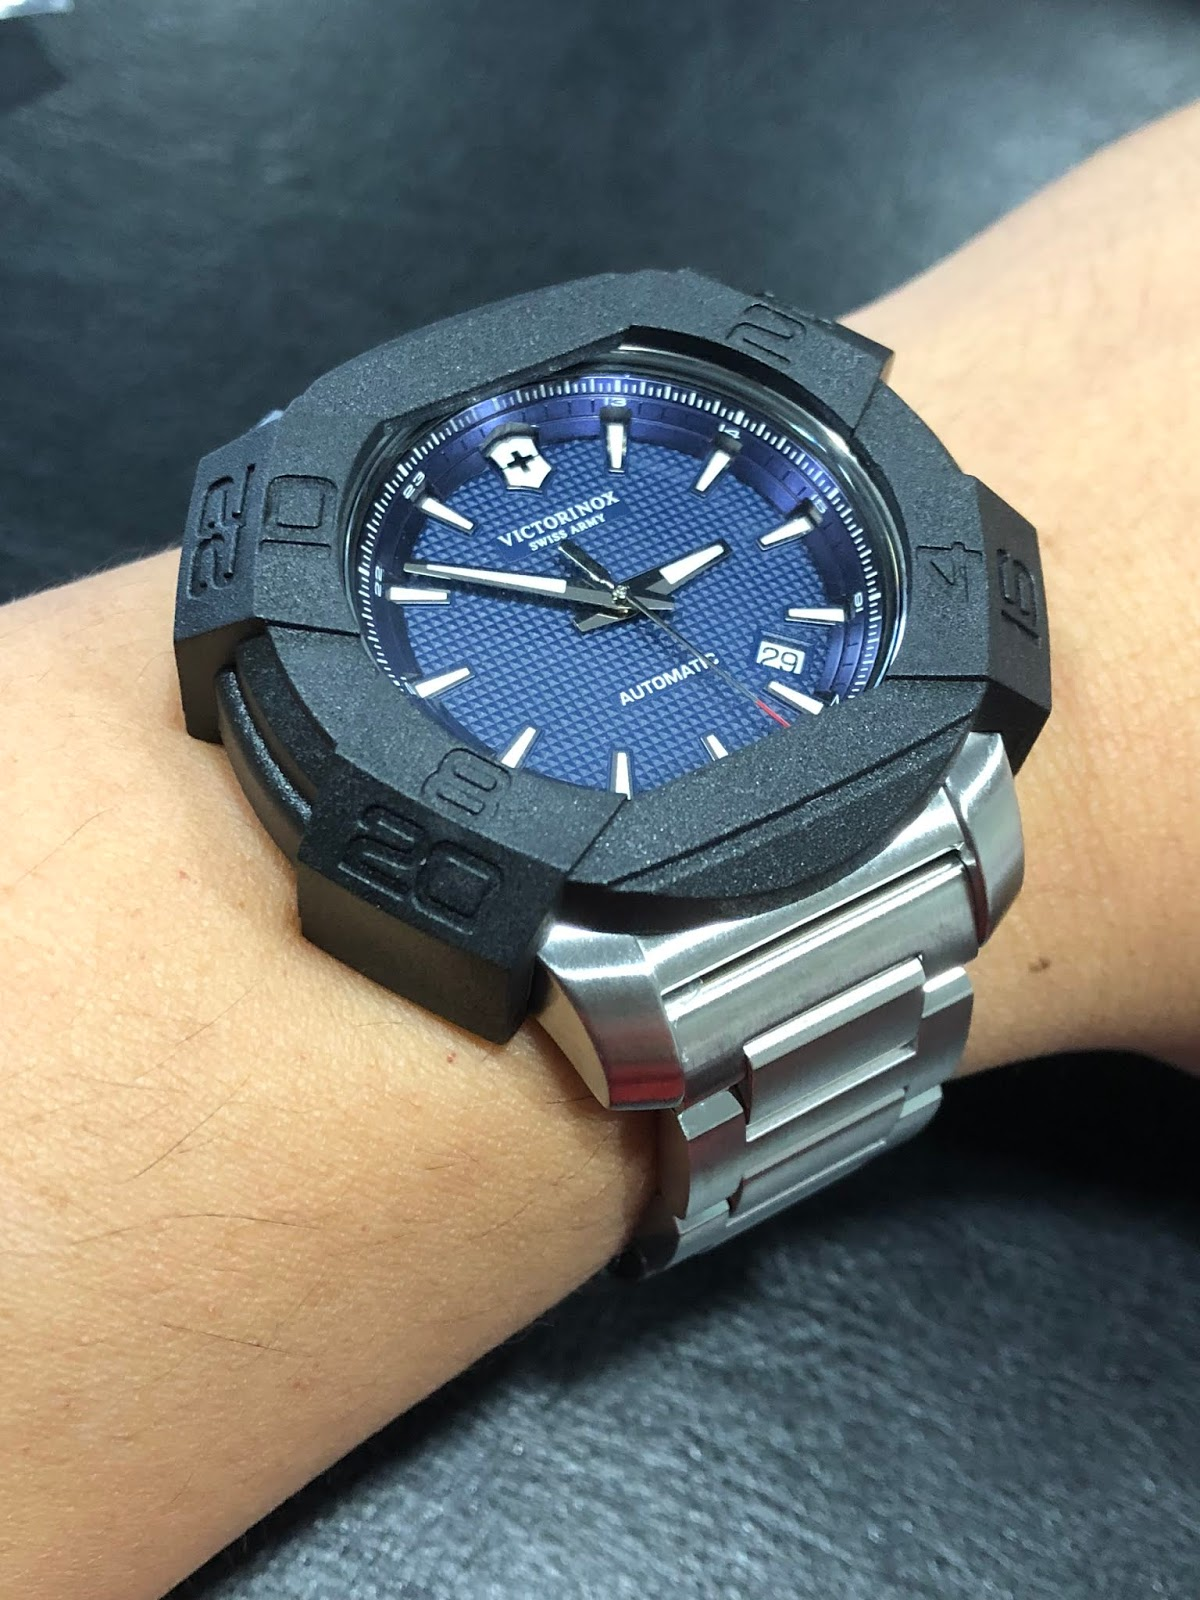 2ebddc1f85338 Below is the watch with the bumper case on my wrist. It does look a bit  like a G-Shock.